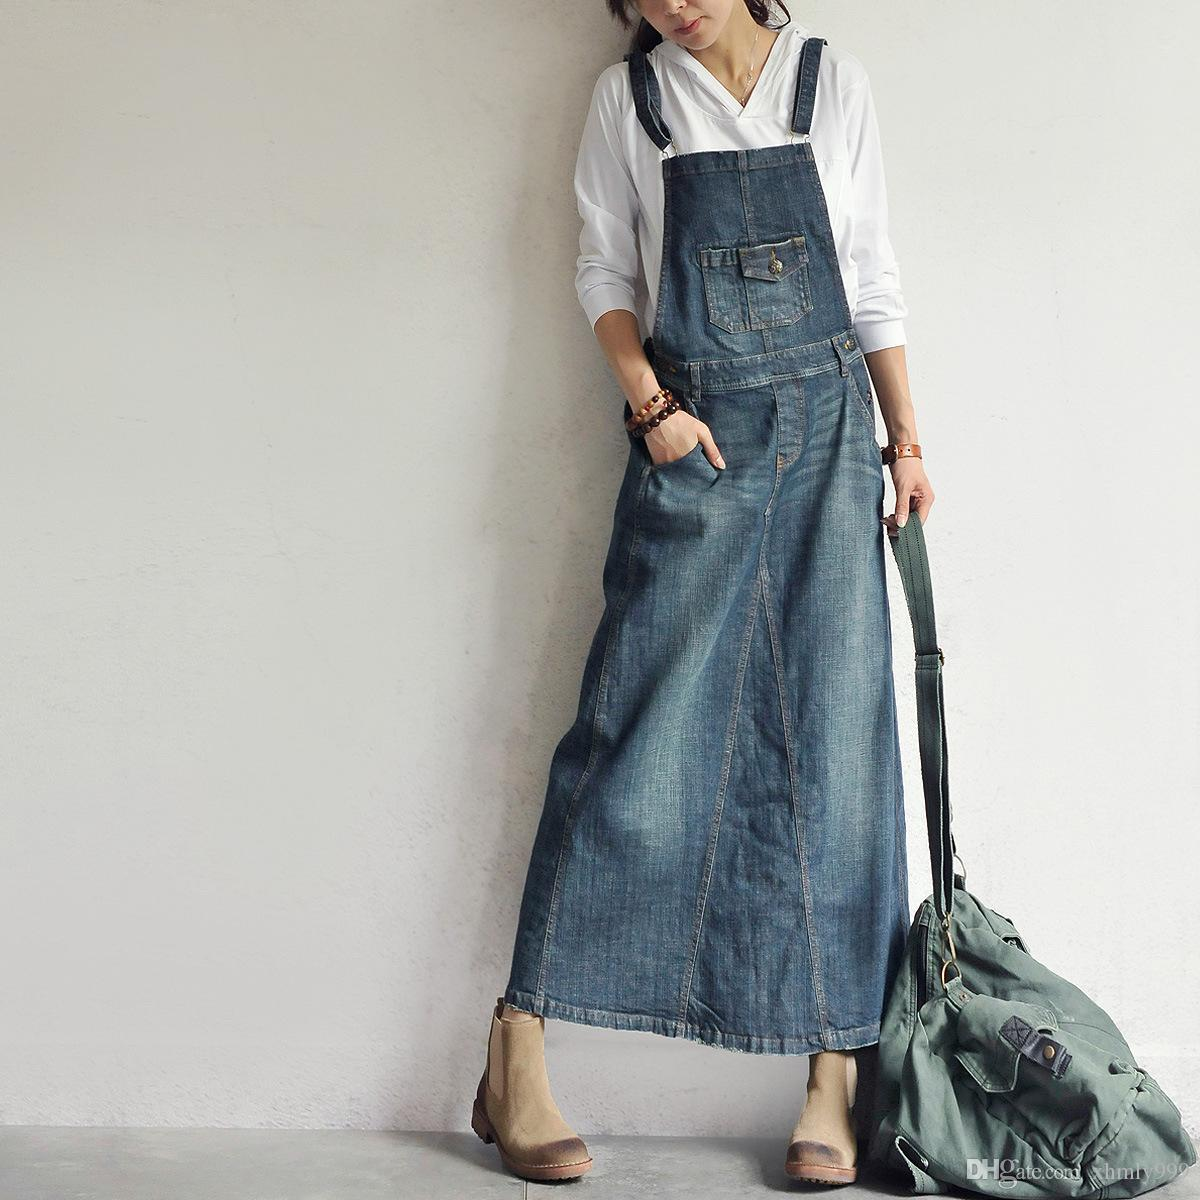 Denim Skirts Channel your inner cowgirl with boohoo's range of denim skirts. Wear with a white shirt and accessorise with a black belt for a cool casual outfit, or .